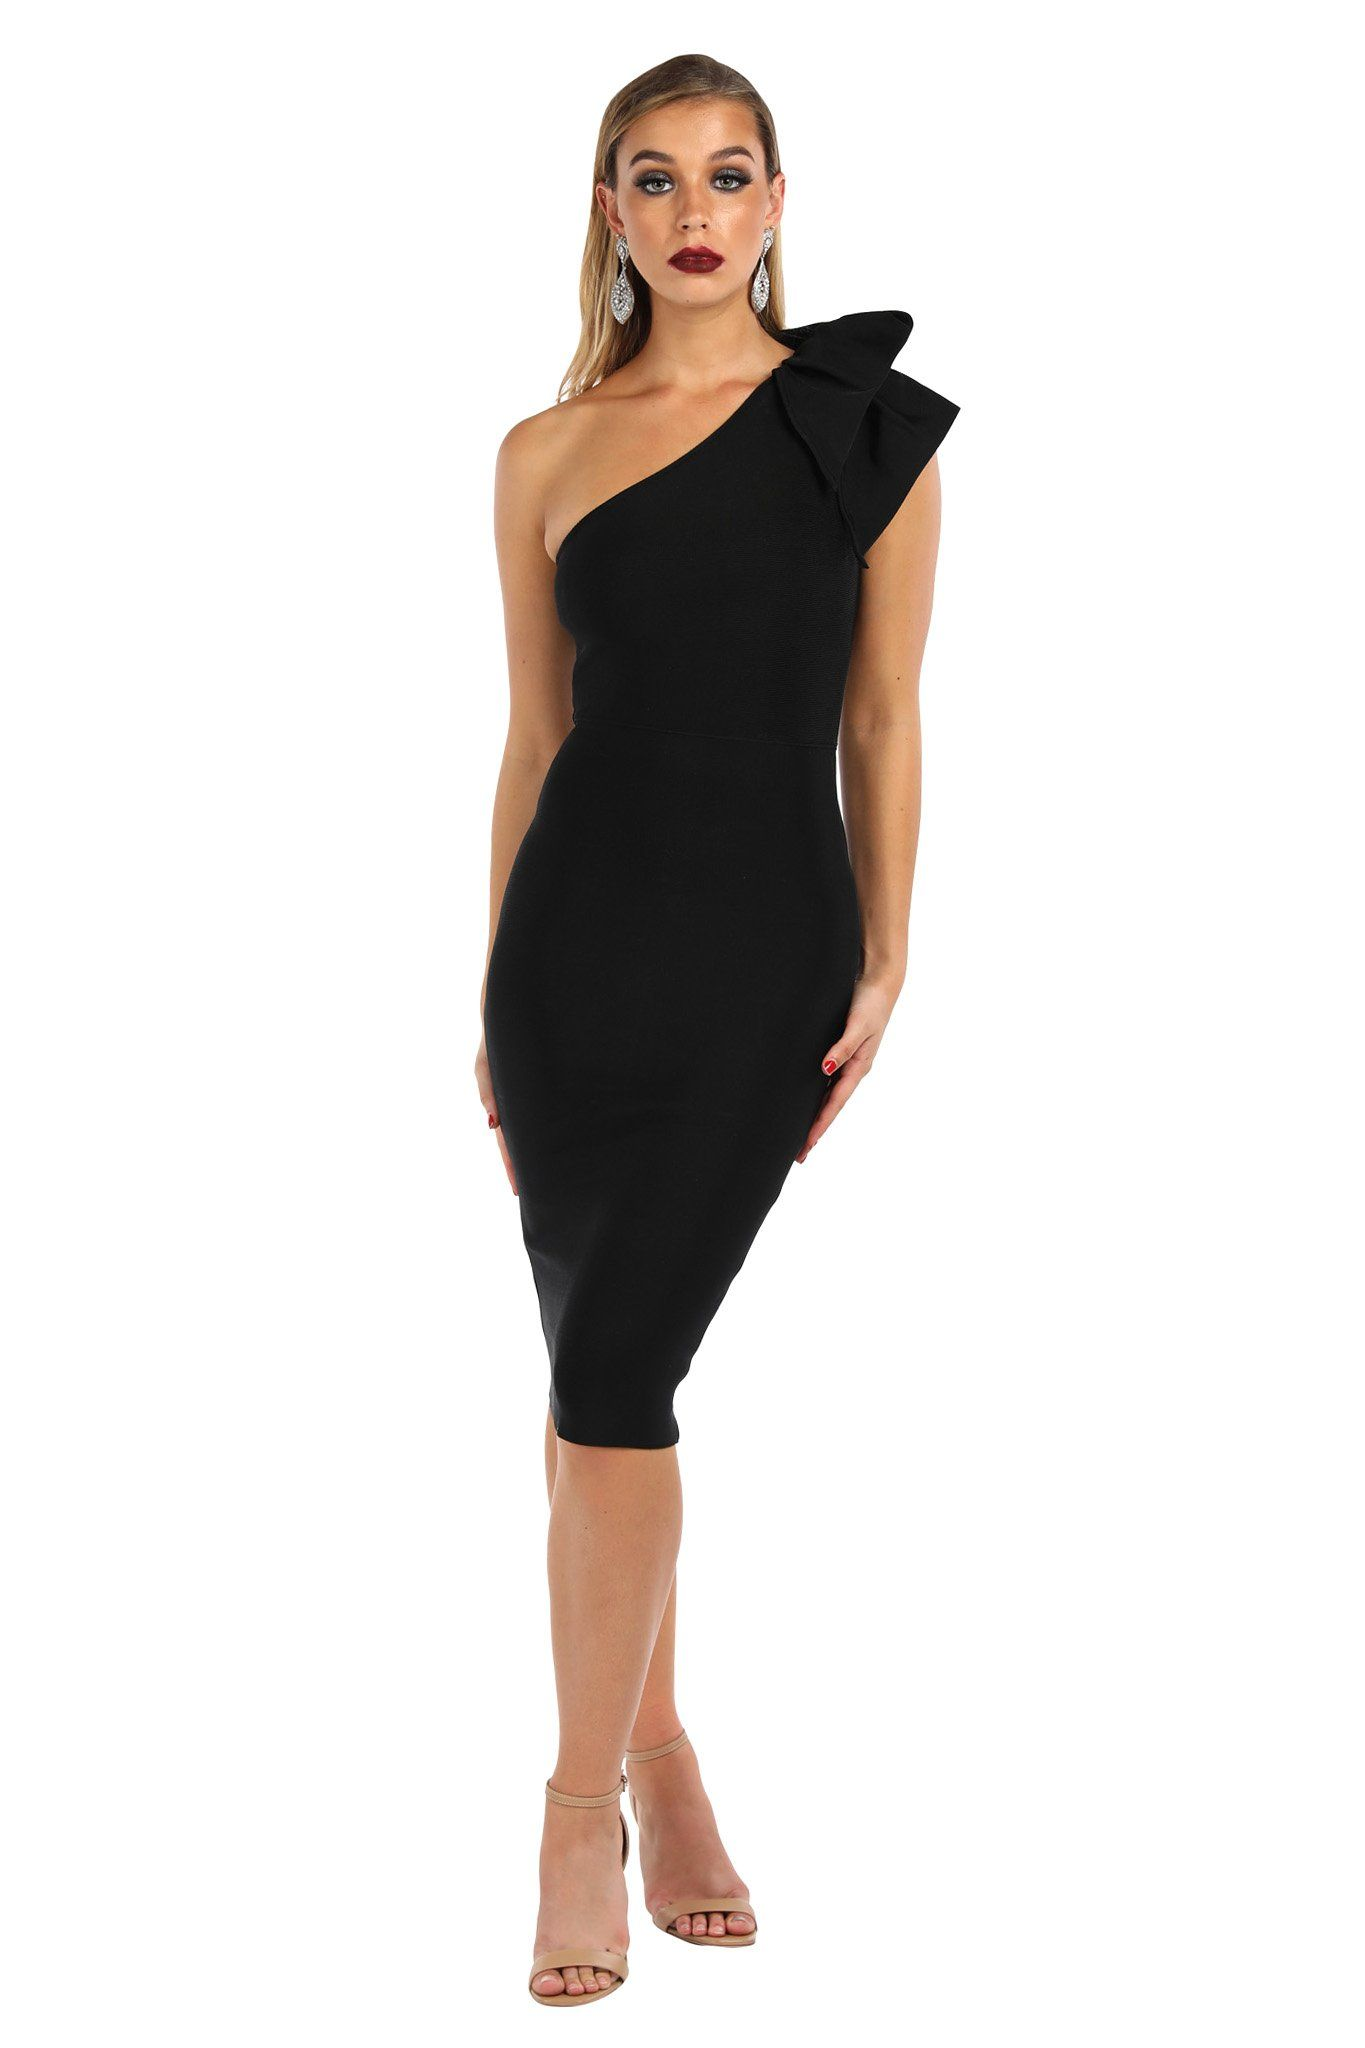 Black one-shoulder knee length tight fitted bandage dress with ruffle detail over one shoulder